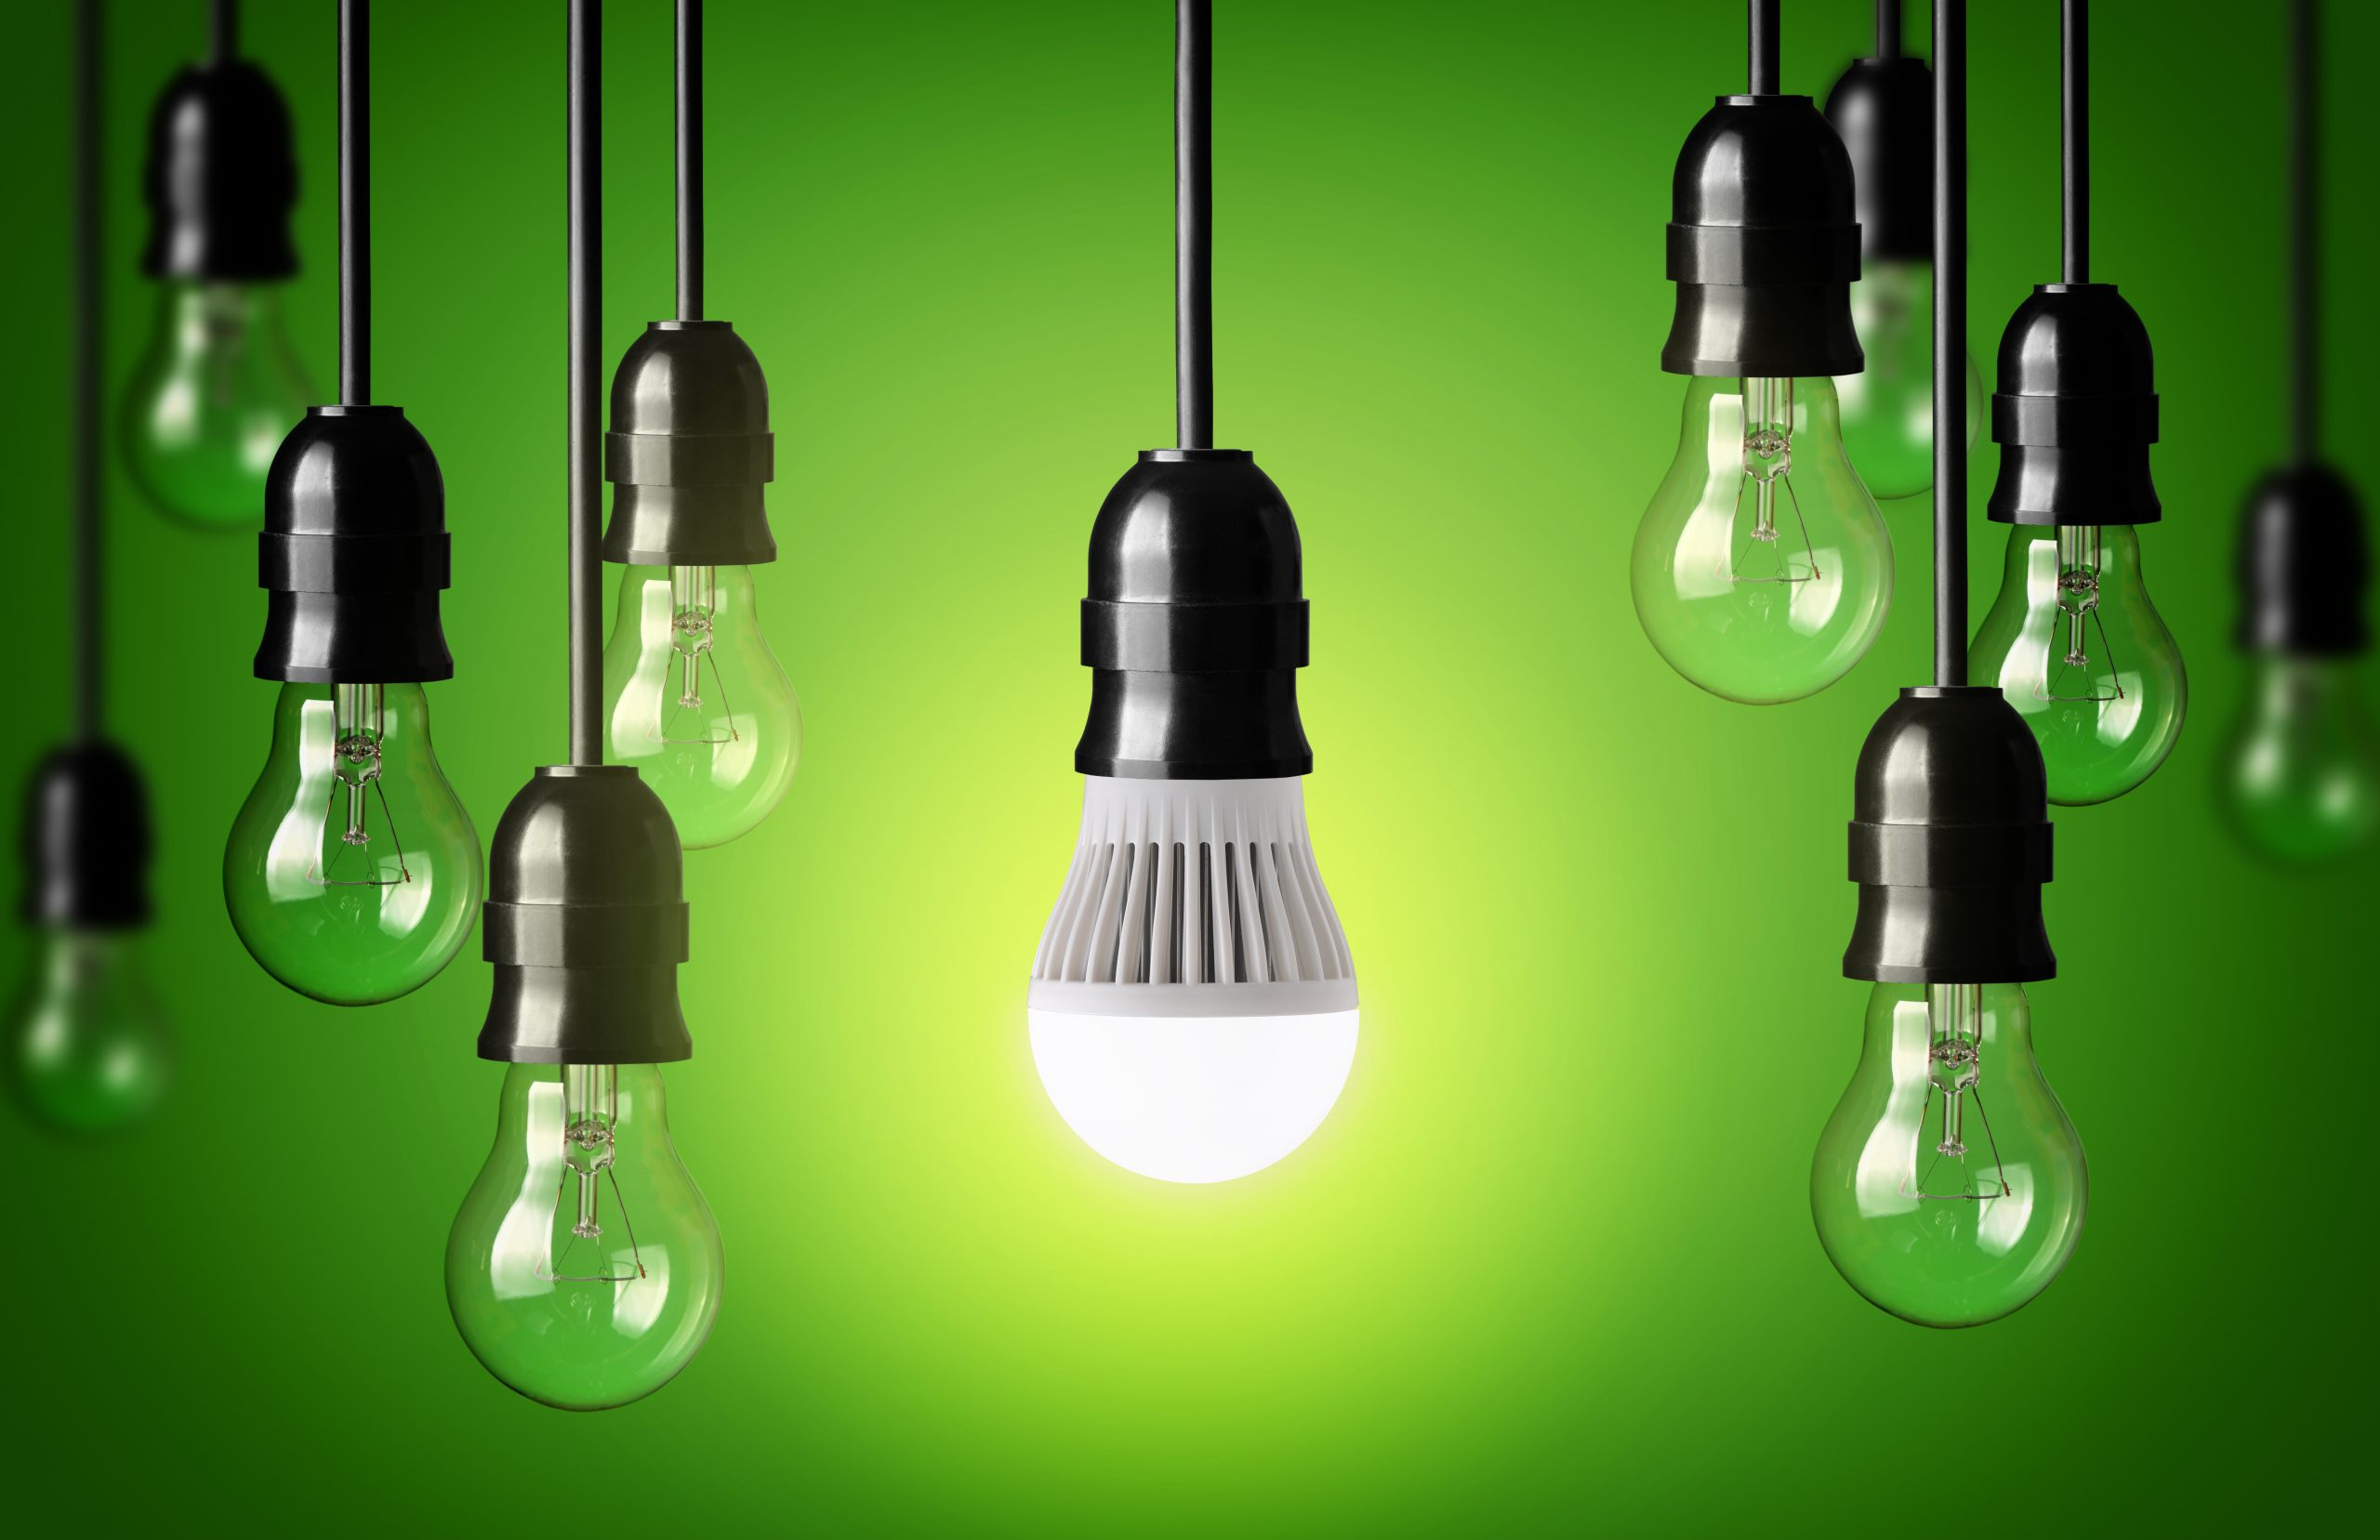 eleven lightbulbs, the only one that's on is the one in the middle, it also has a dark green to light green background - LasVegasRealEstate.com